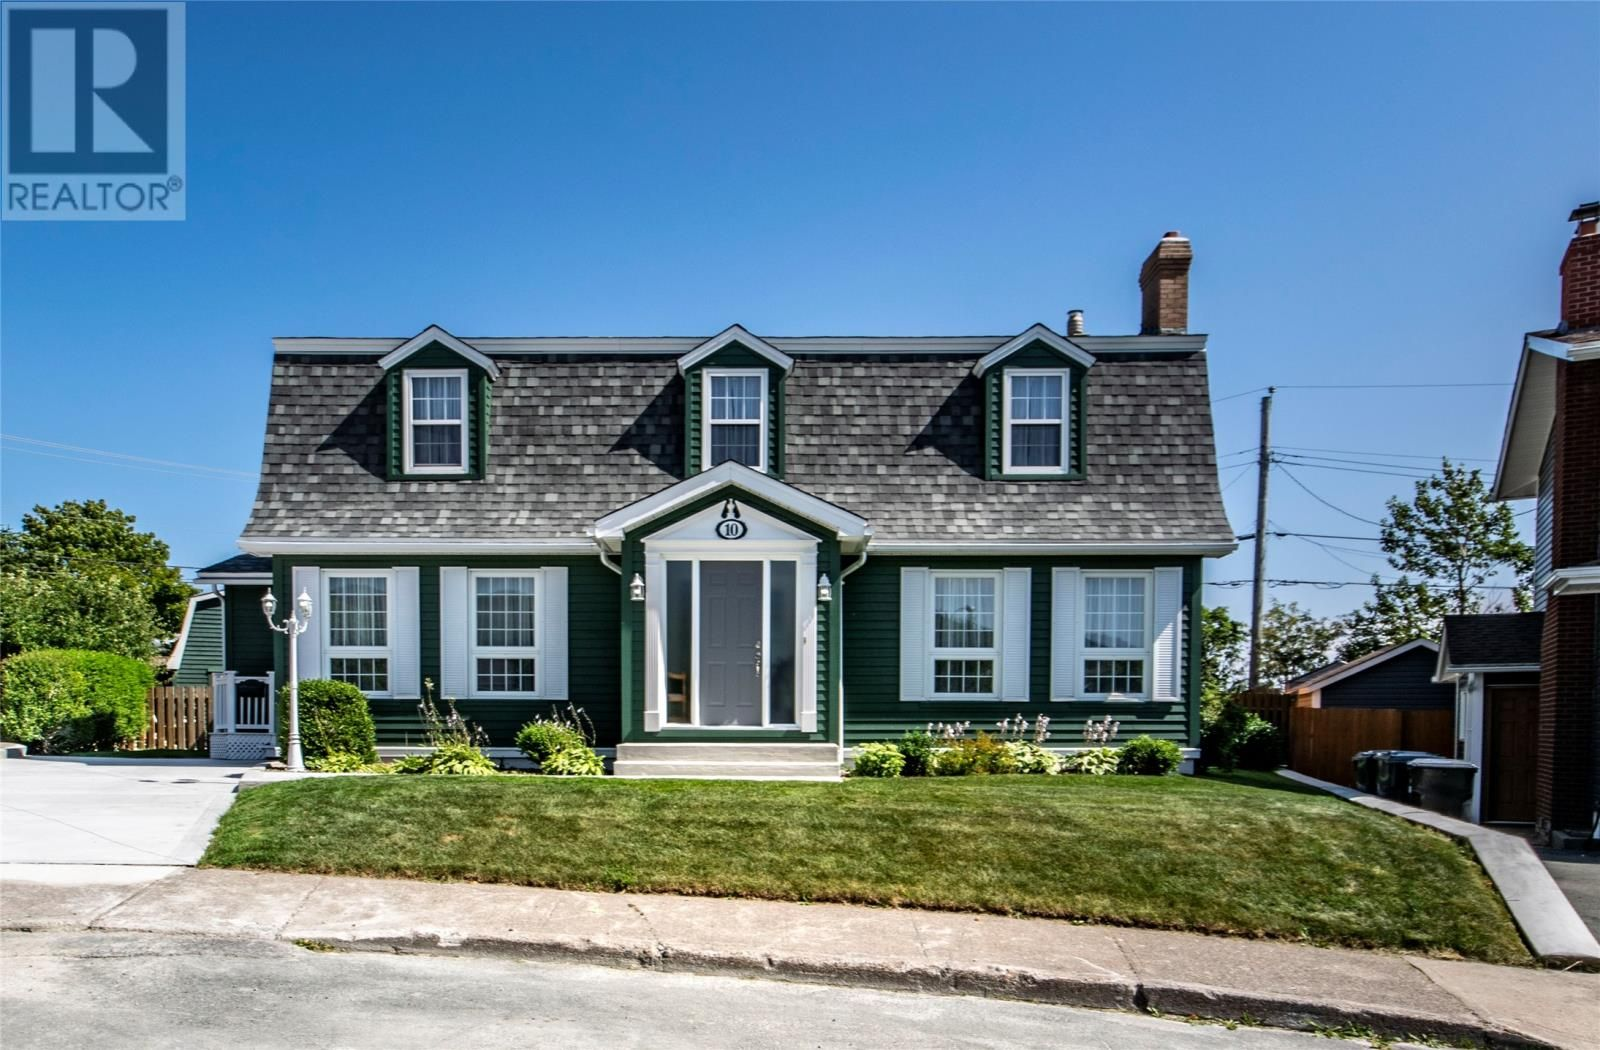 Main Photo: 10 LaManche Place in St. John's: House for sale : MLS®# 1236570